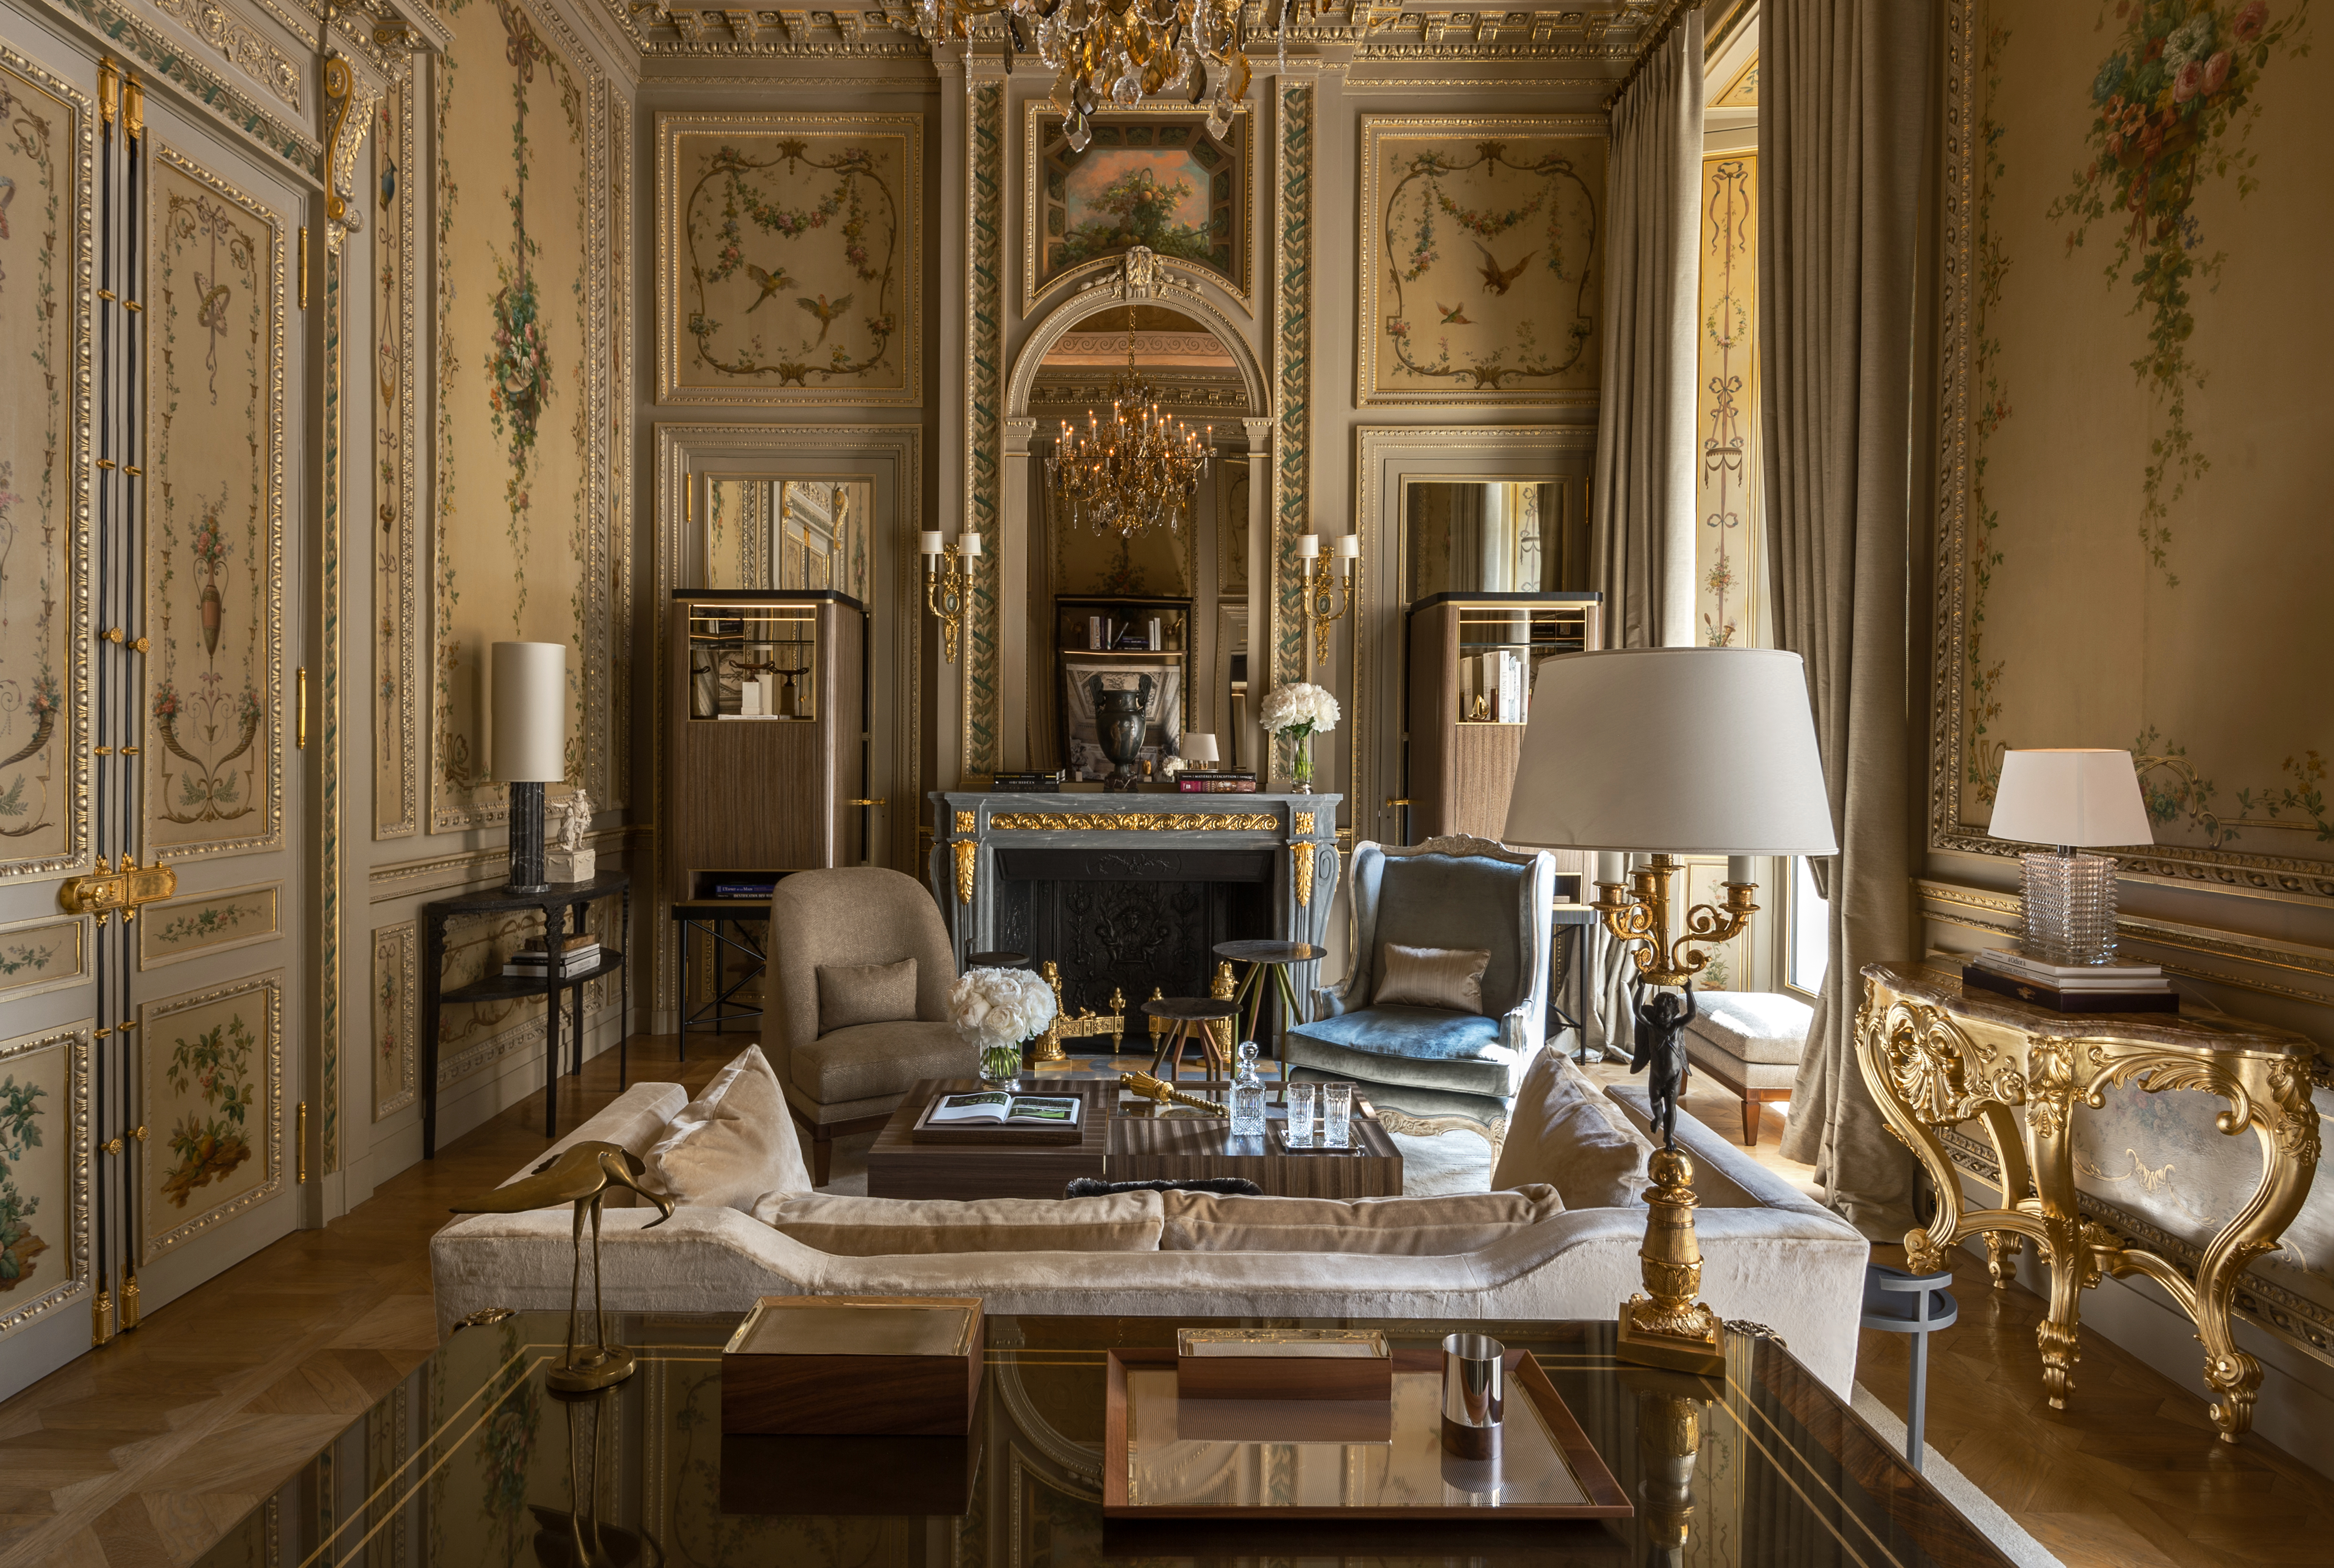 Rosewood opens iconic h tel de crillon paris after a four for The rosewood